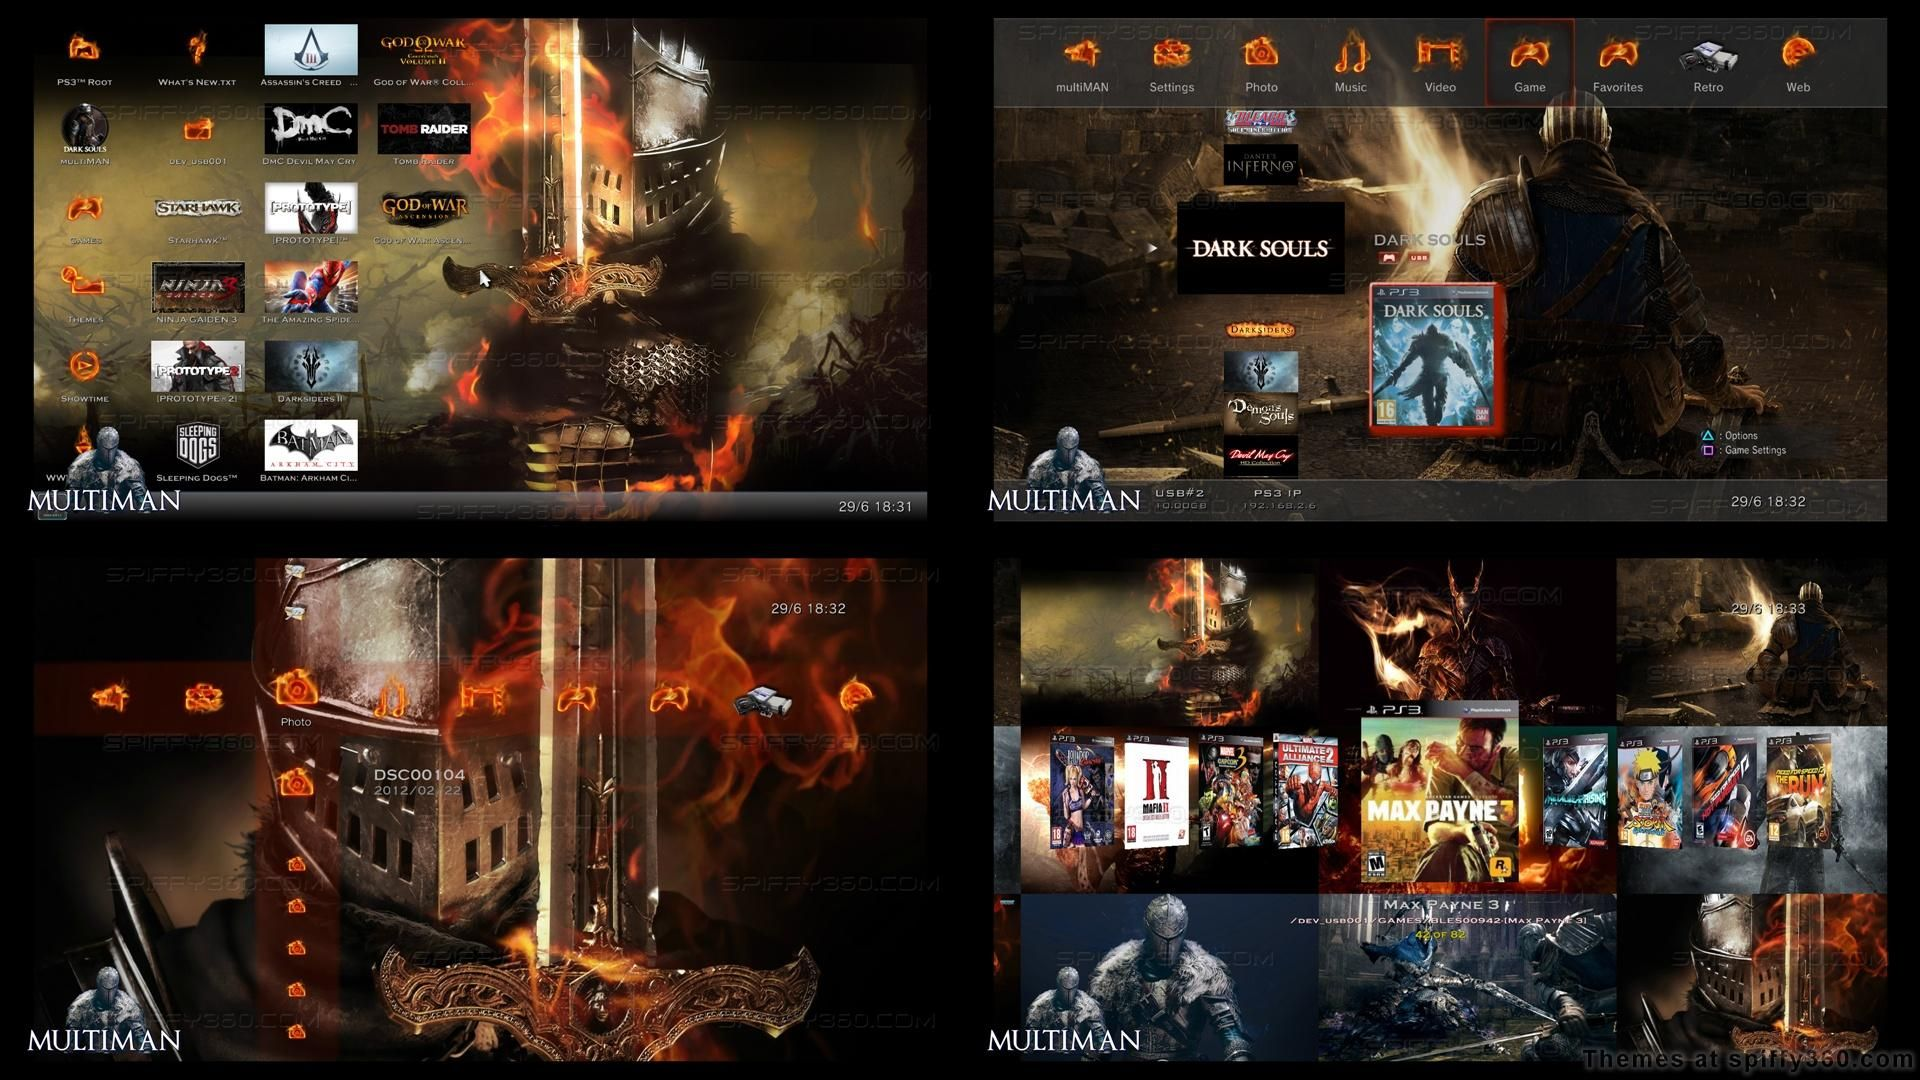 Playstation 3 Theme Depository - Themes for PS3 software and